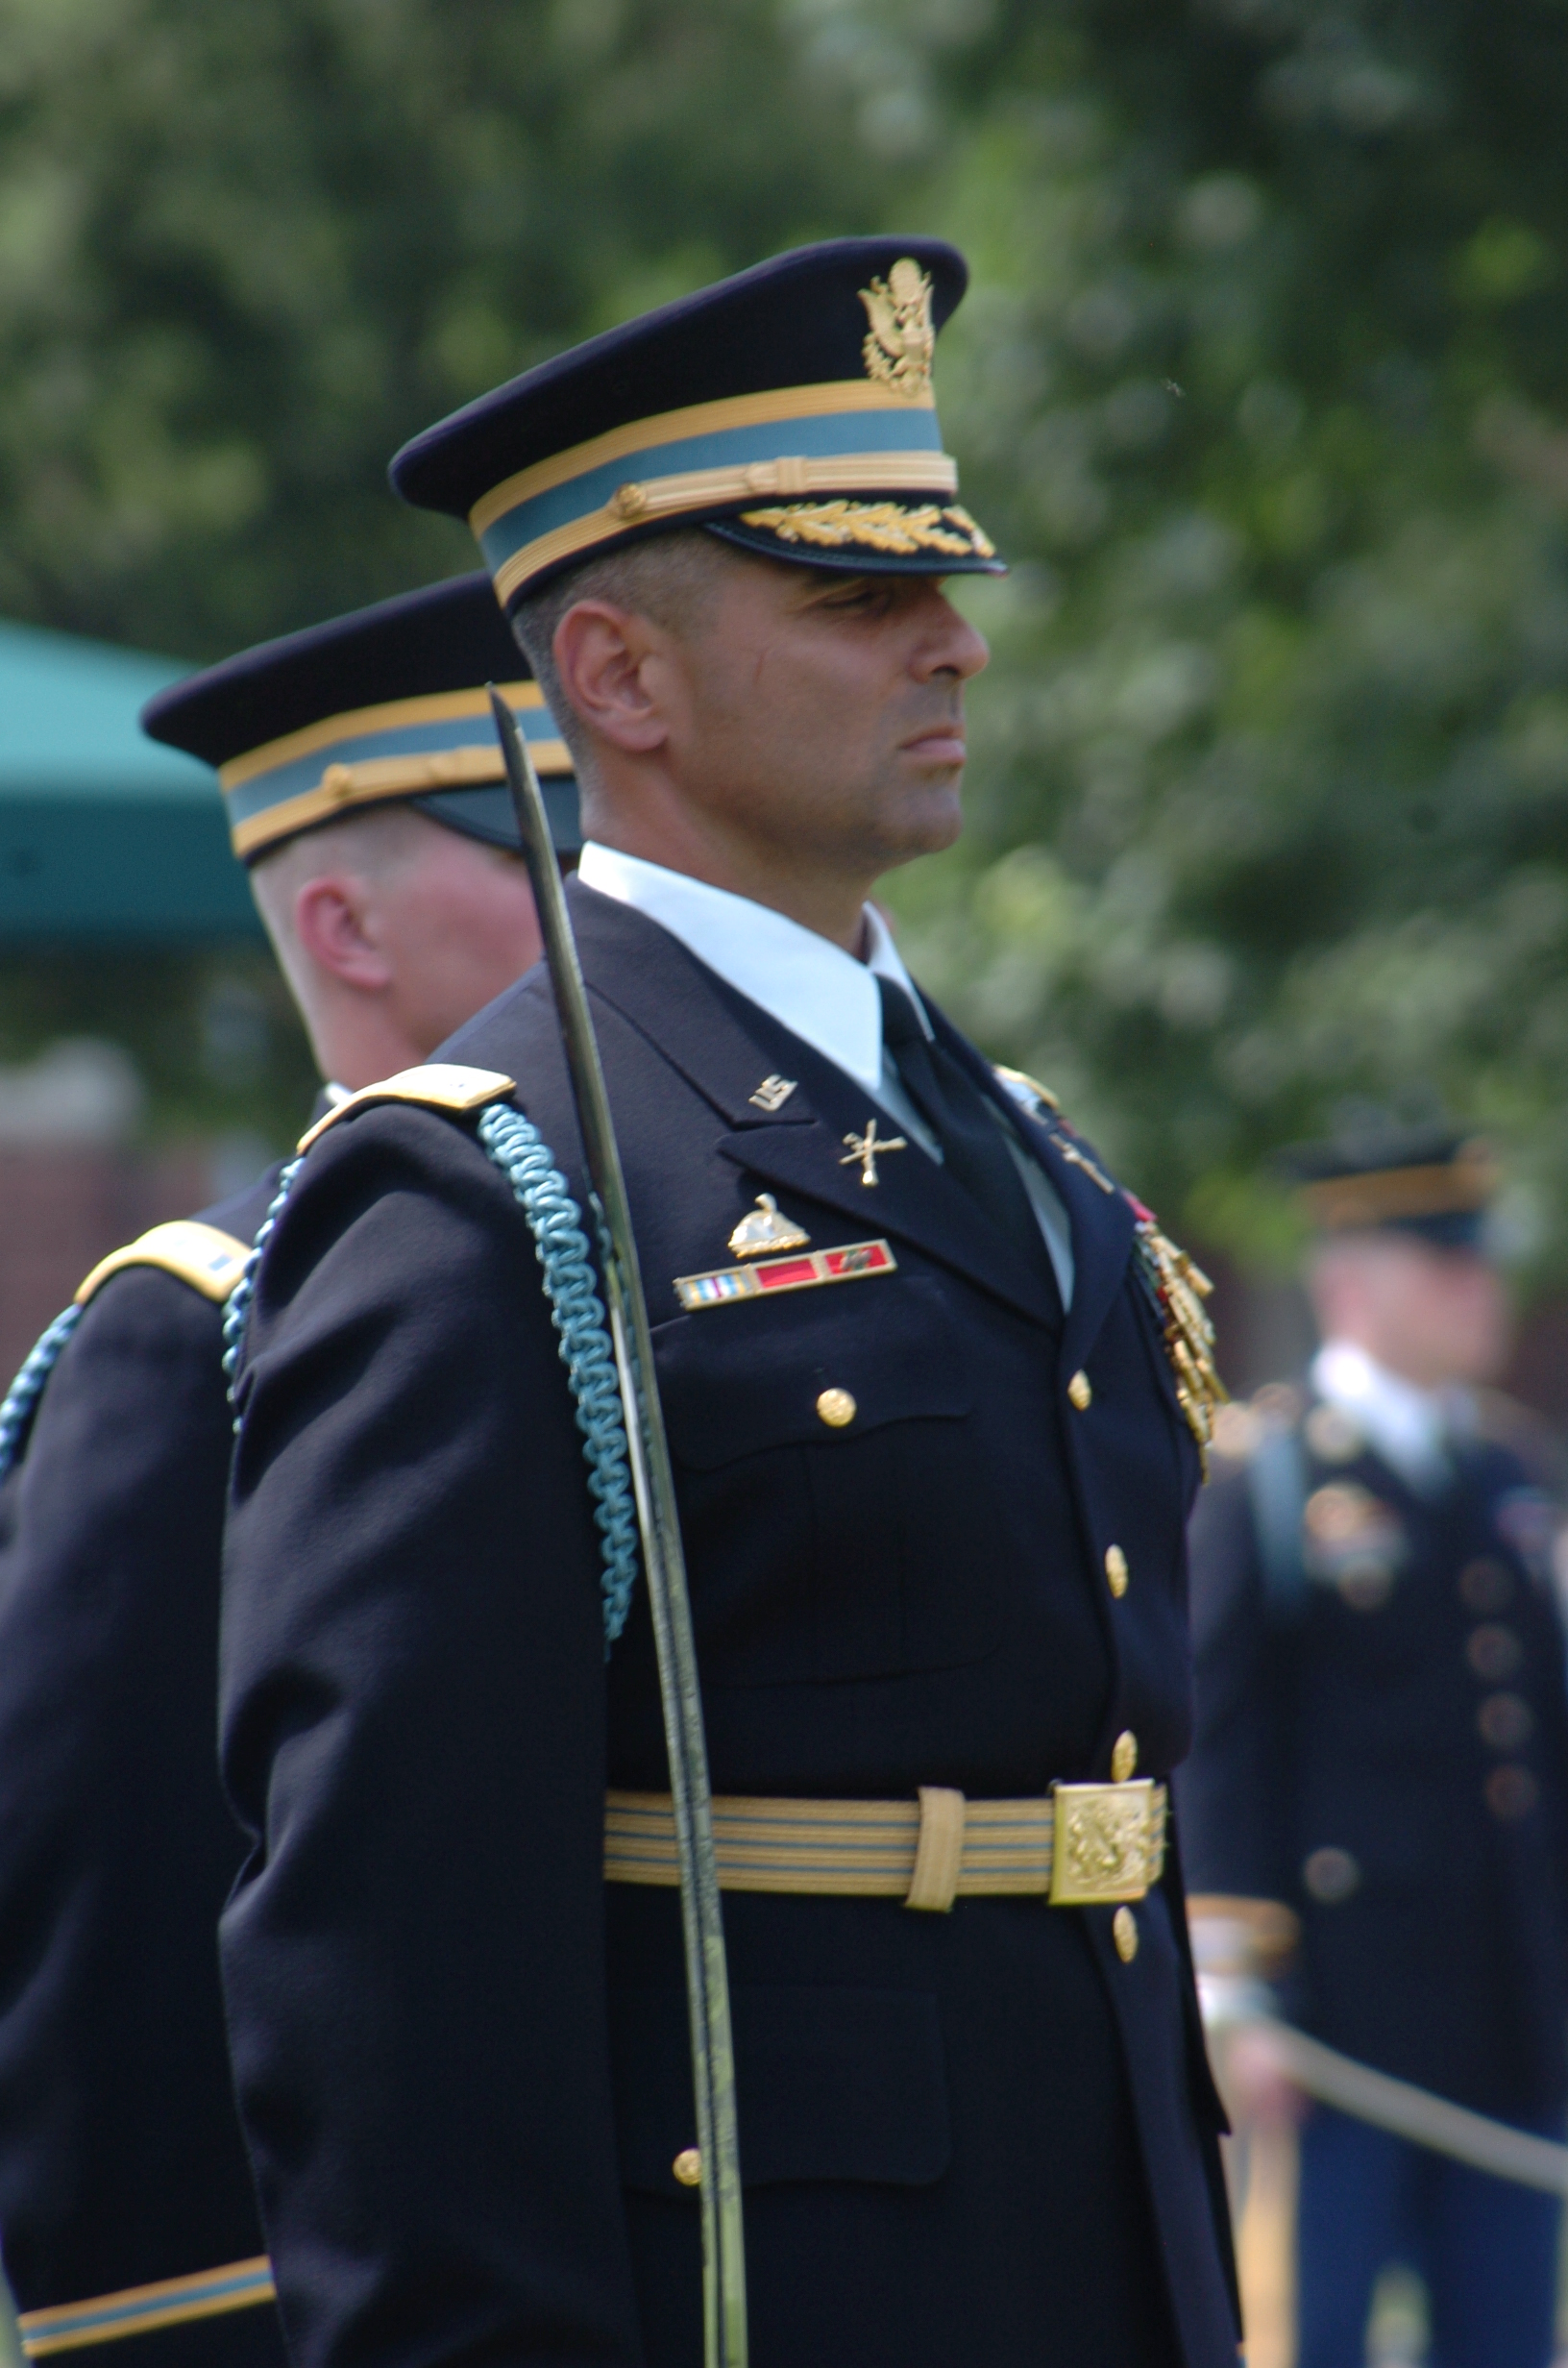 The U.S. Army's Old Guard | greatsnaps, goodtimes and me